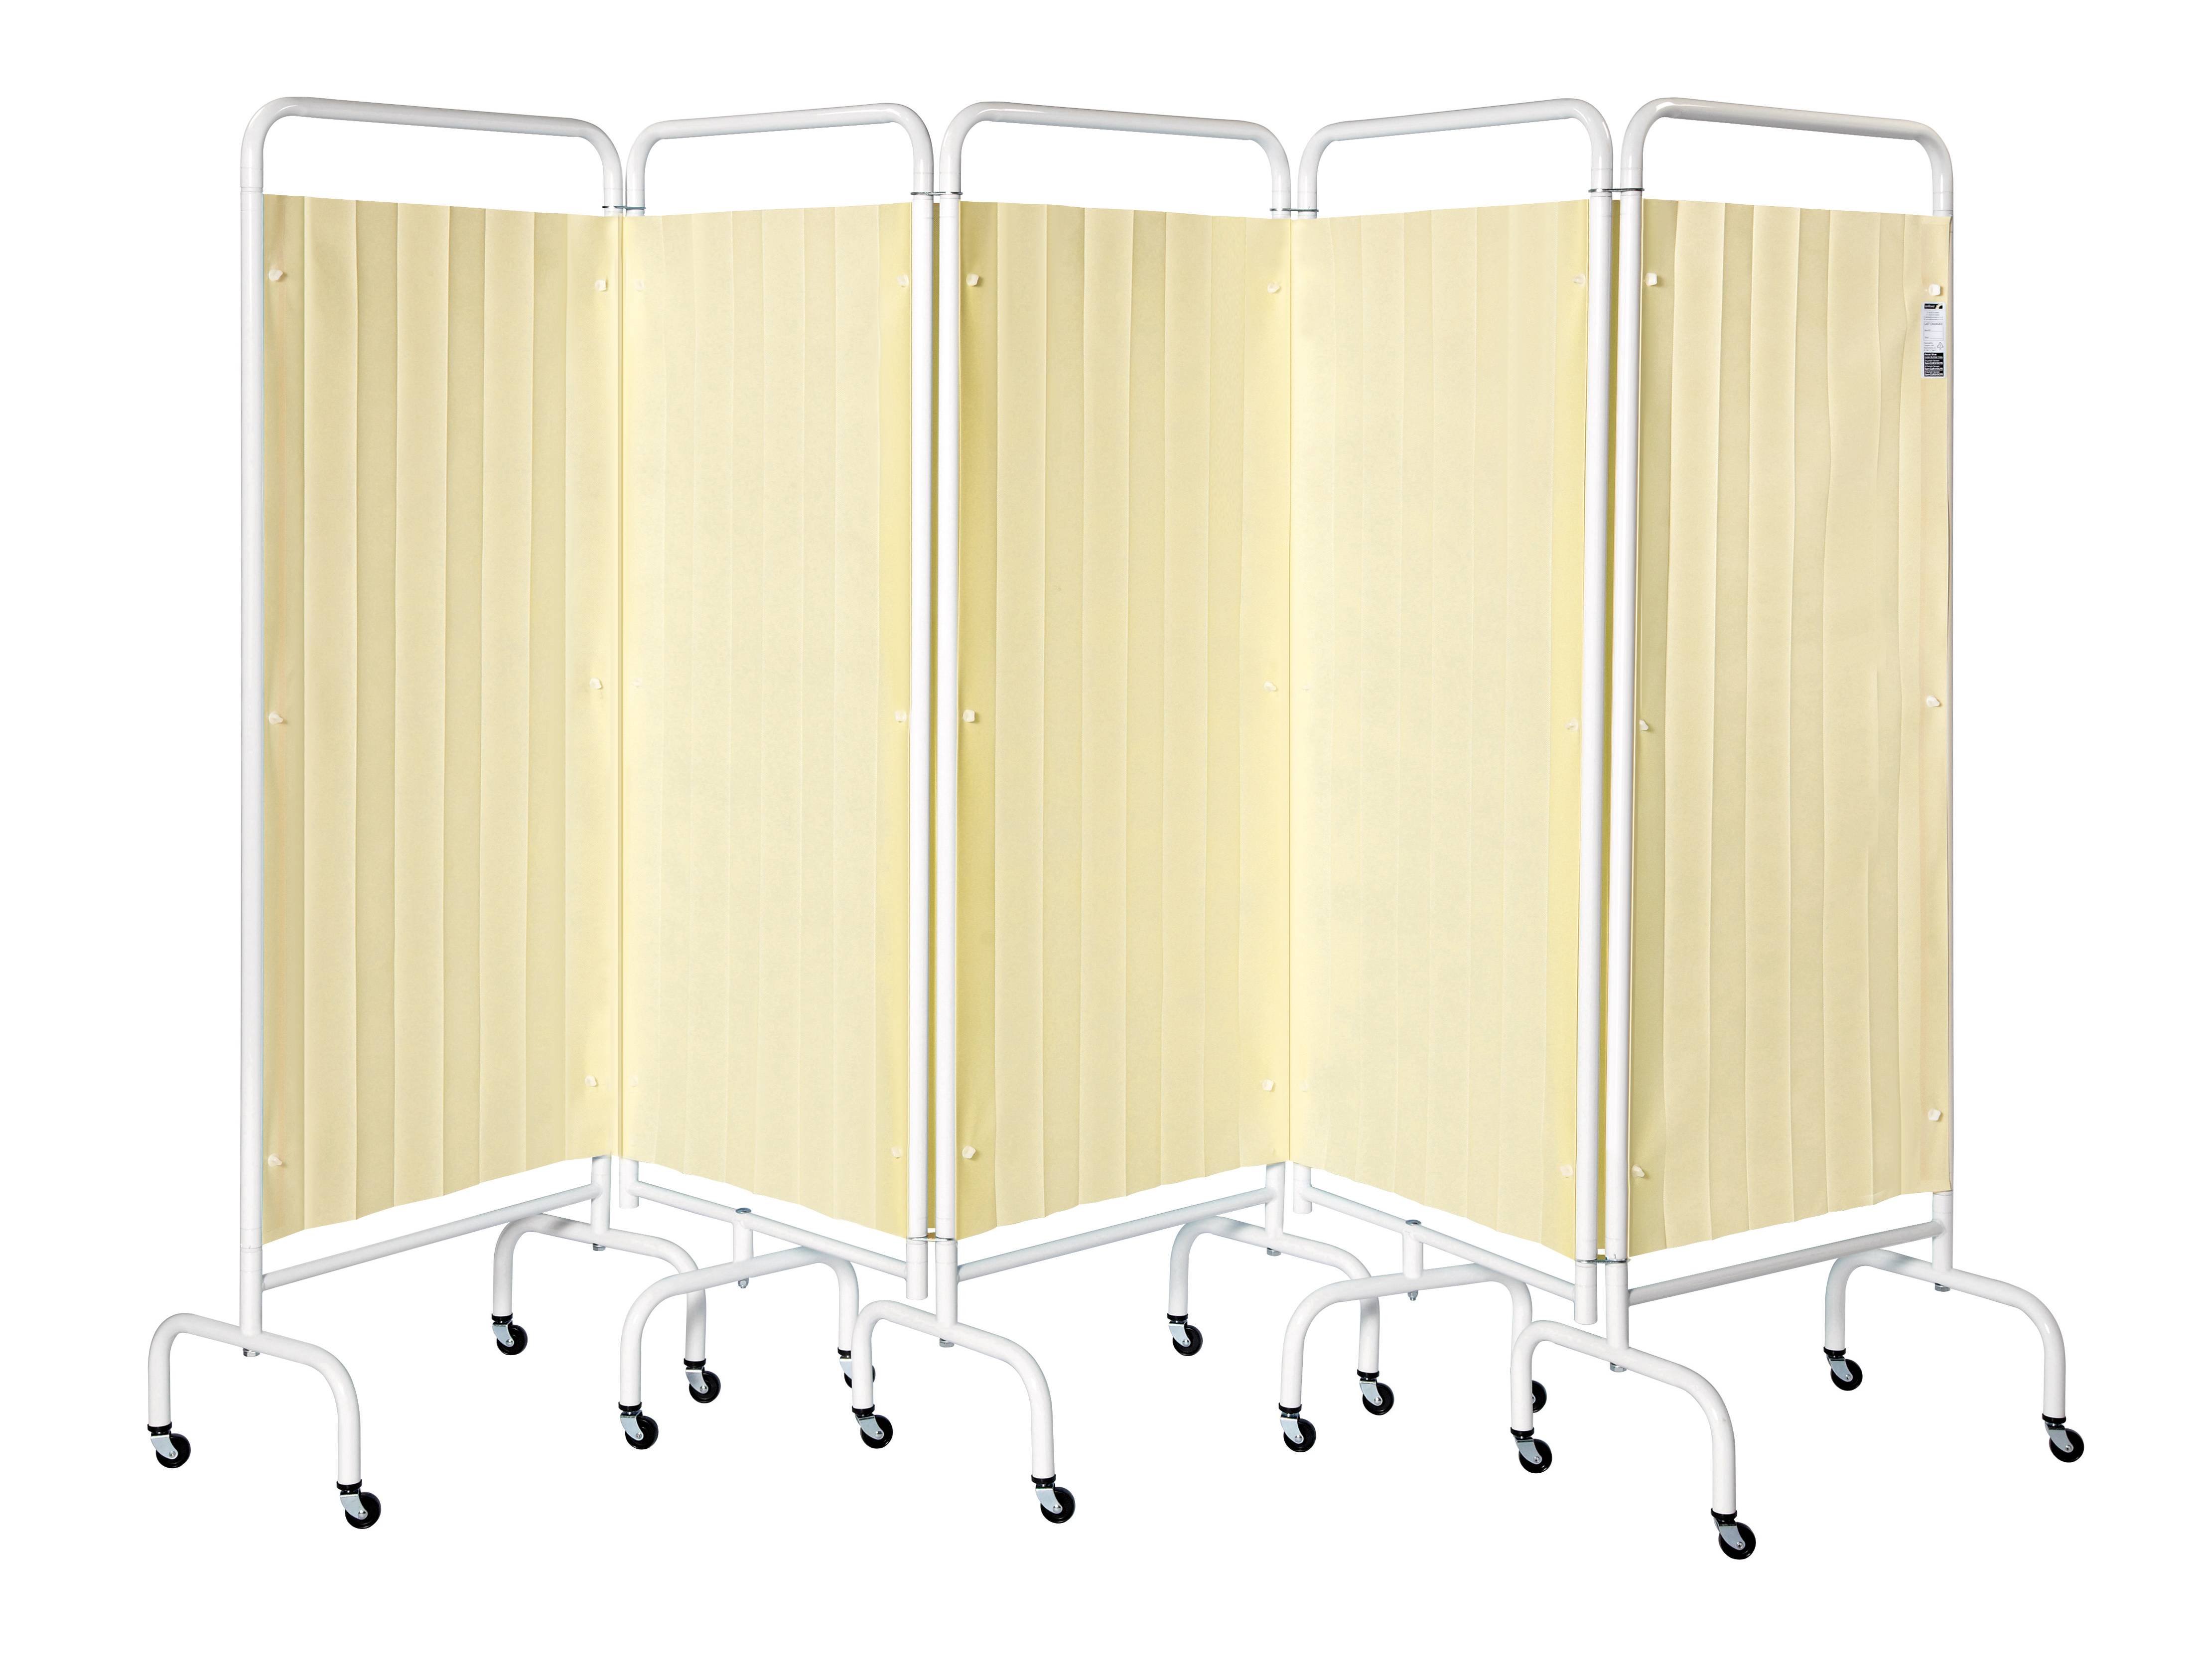 5 Panel Mobile Folding Curtained Screen